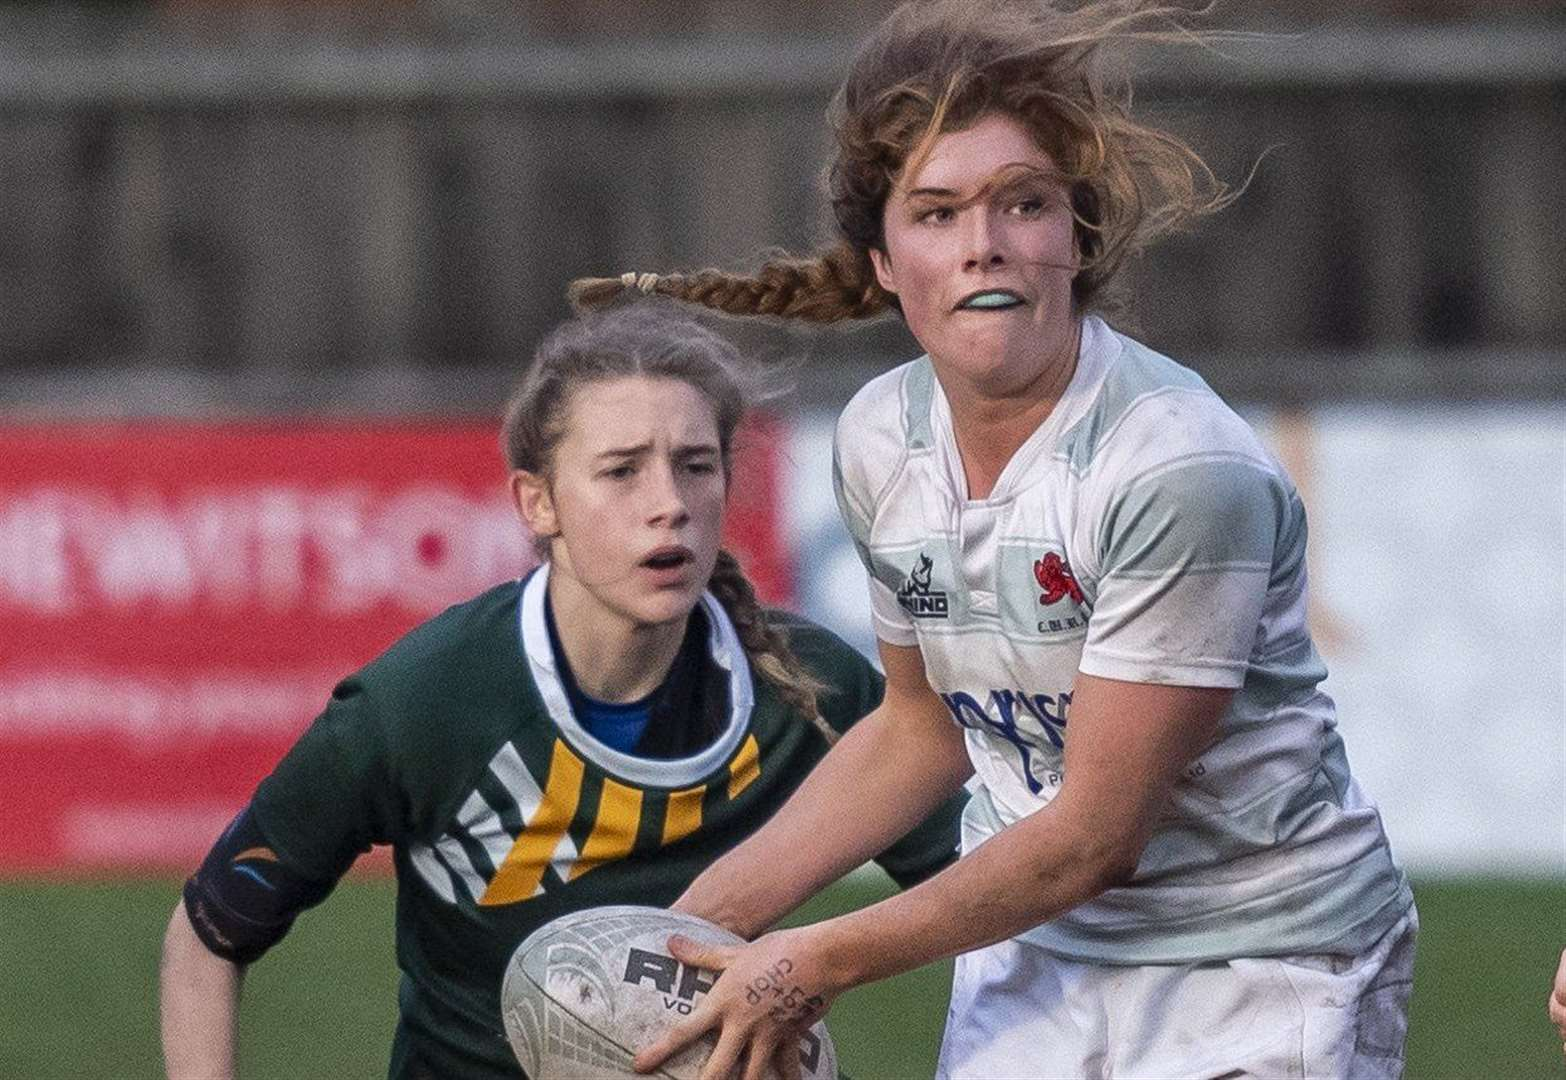 Fiona Shuttleworth aspires to develop women's rugby at Cambridge University RUFC